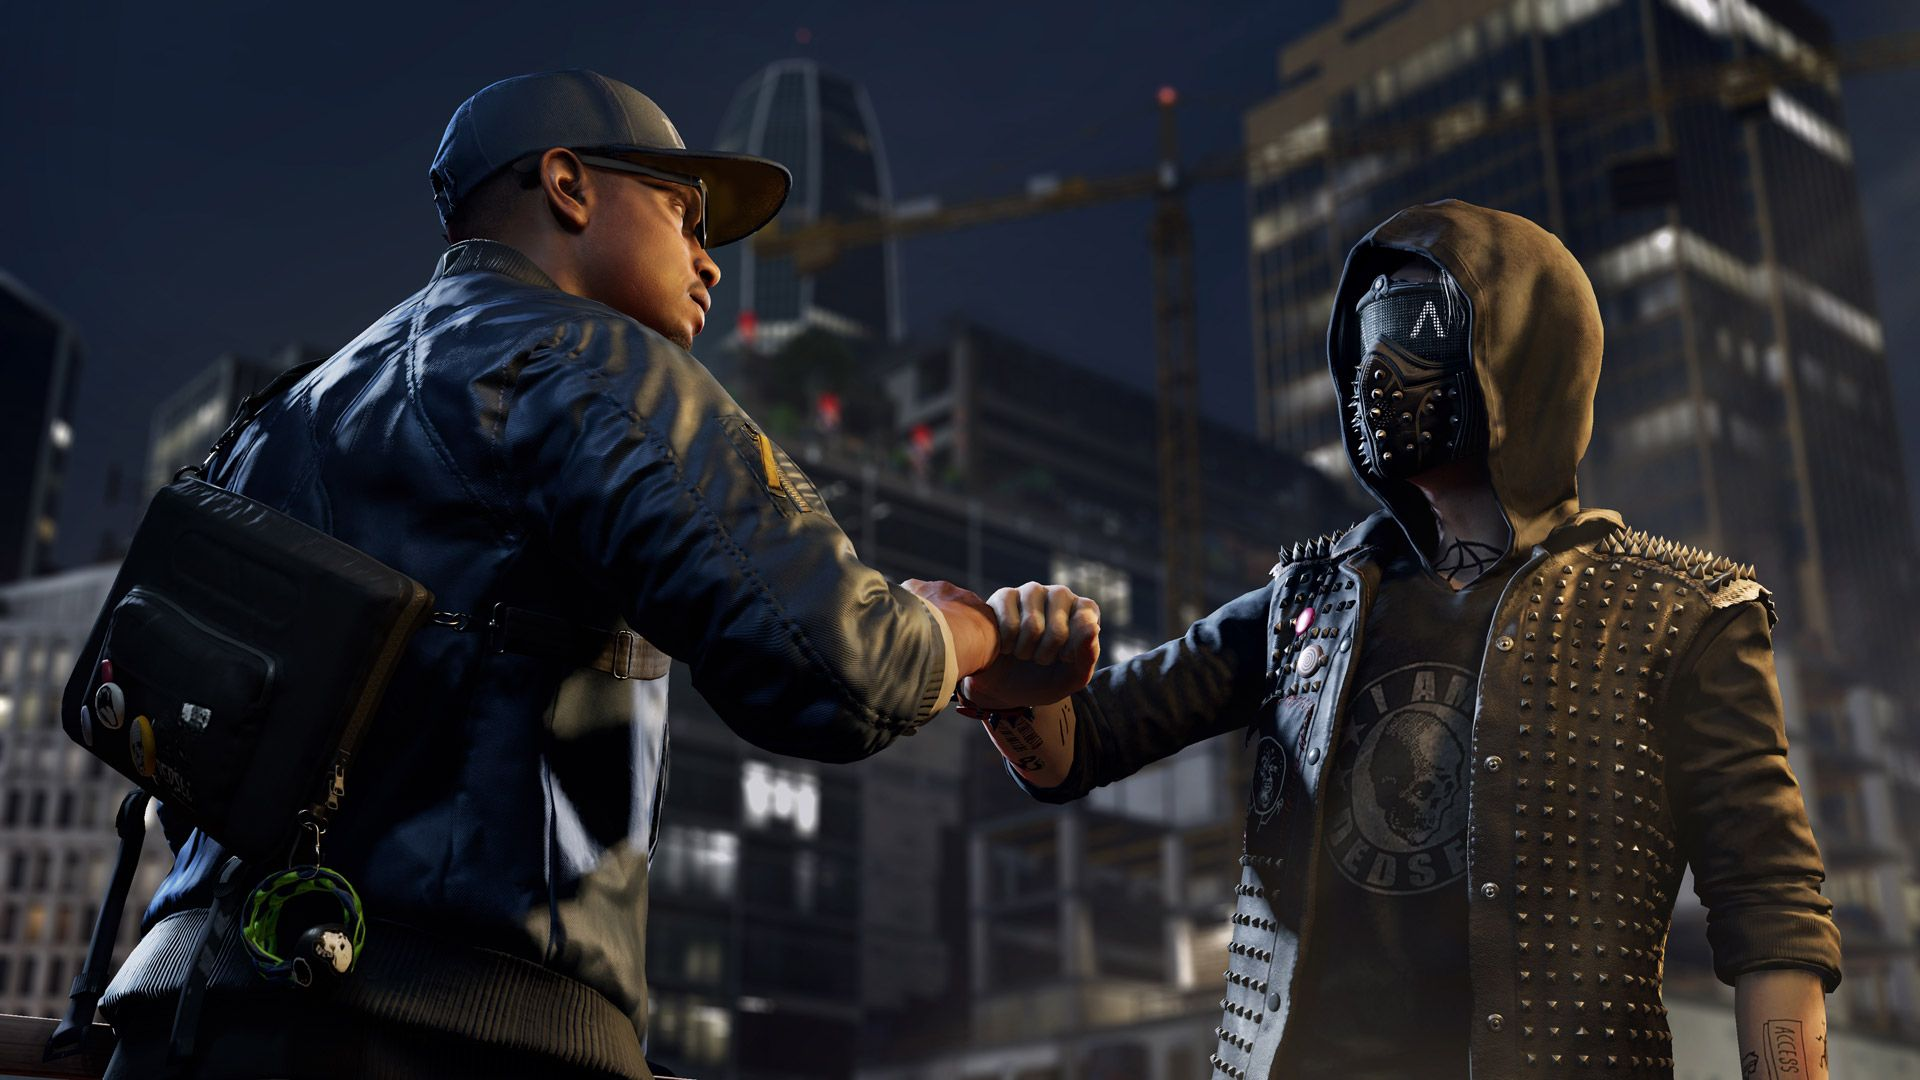 New Watch Dogs 2 Footage Highlights Open World Multiplayer Mayhem WD2 screen thewrench e3 160613 230pm 1465823085.0